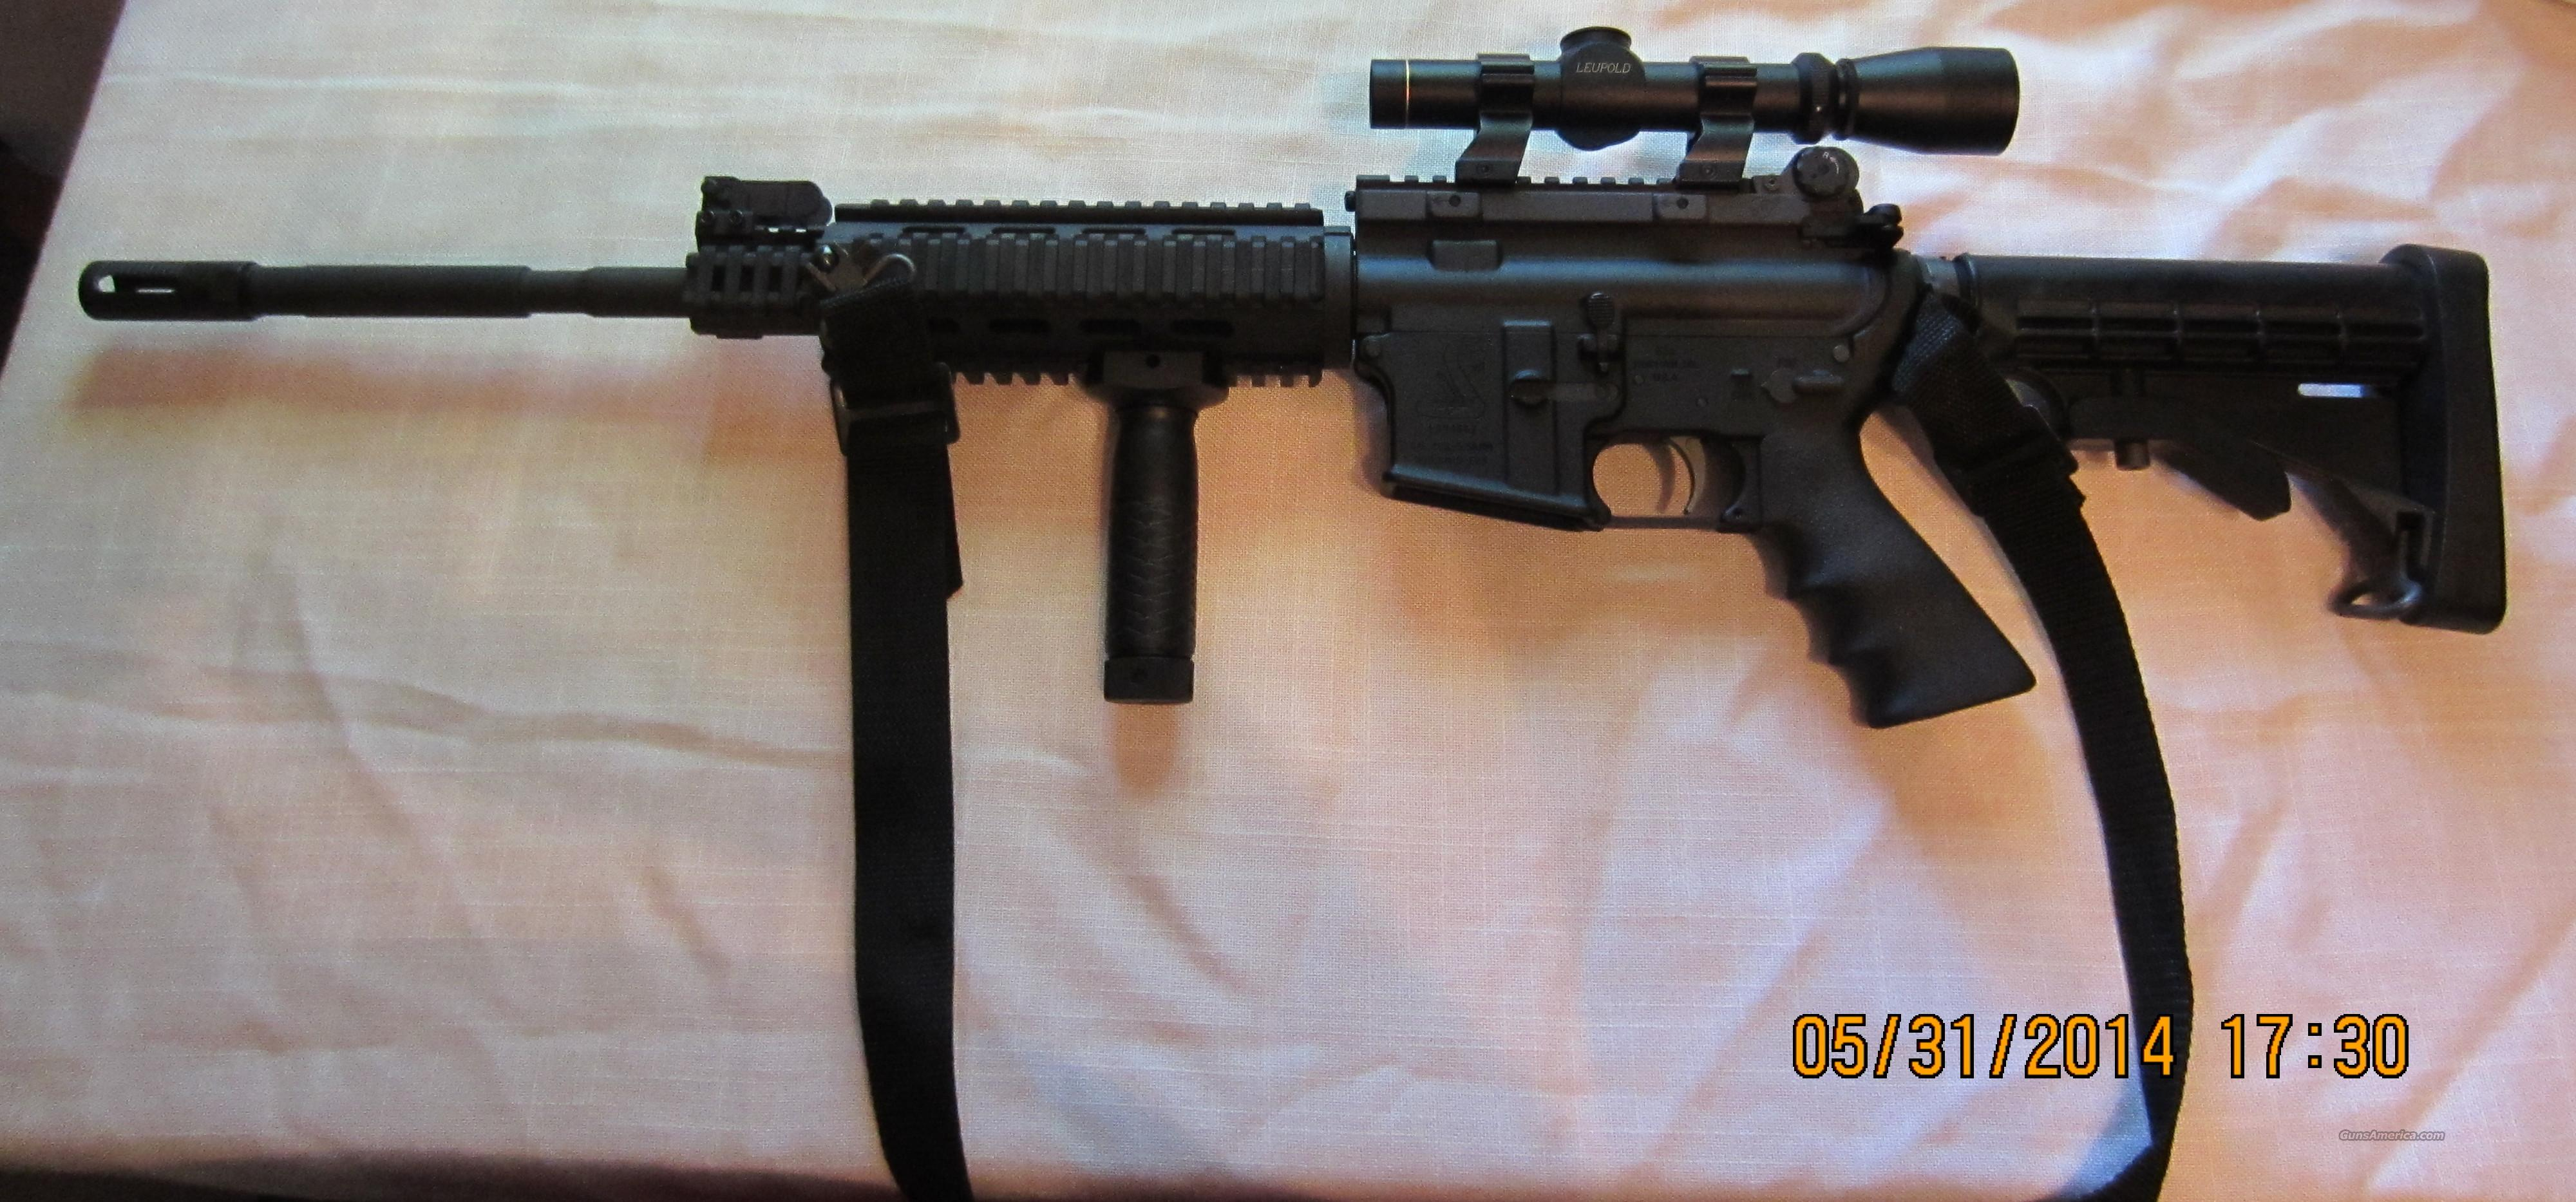 Bushmaster M4 A3 (w/ upgrades)  Guns > Rifles > AR-15 Rifles - Small Manufacturers > Complete Rifle